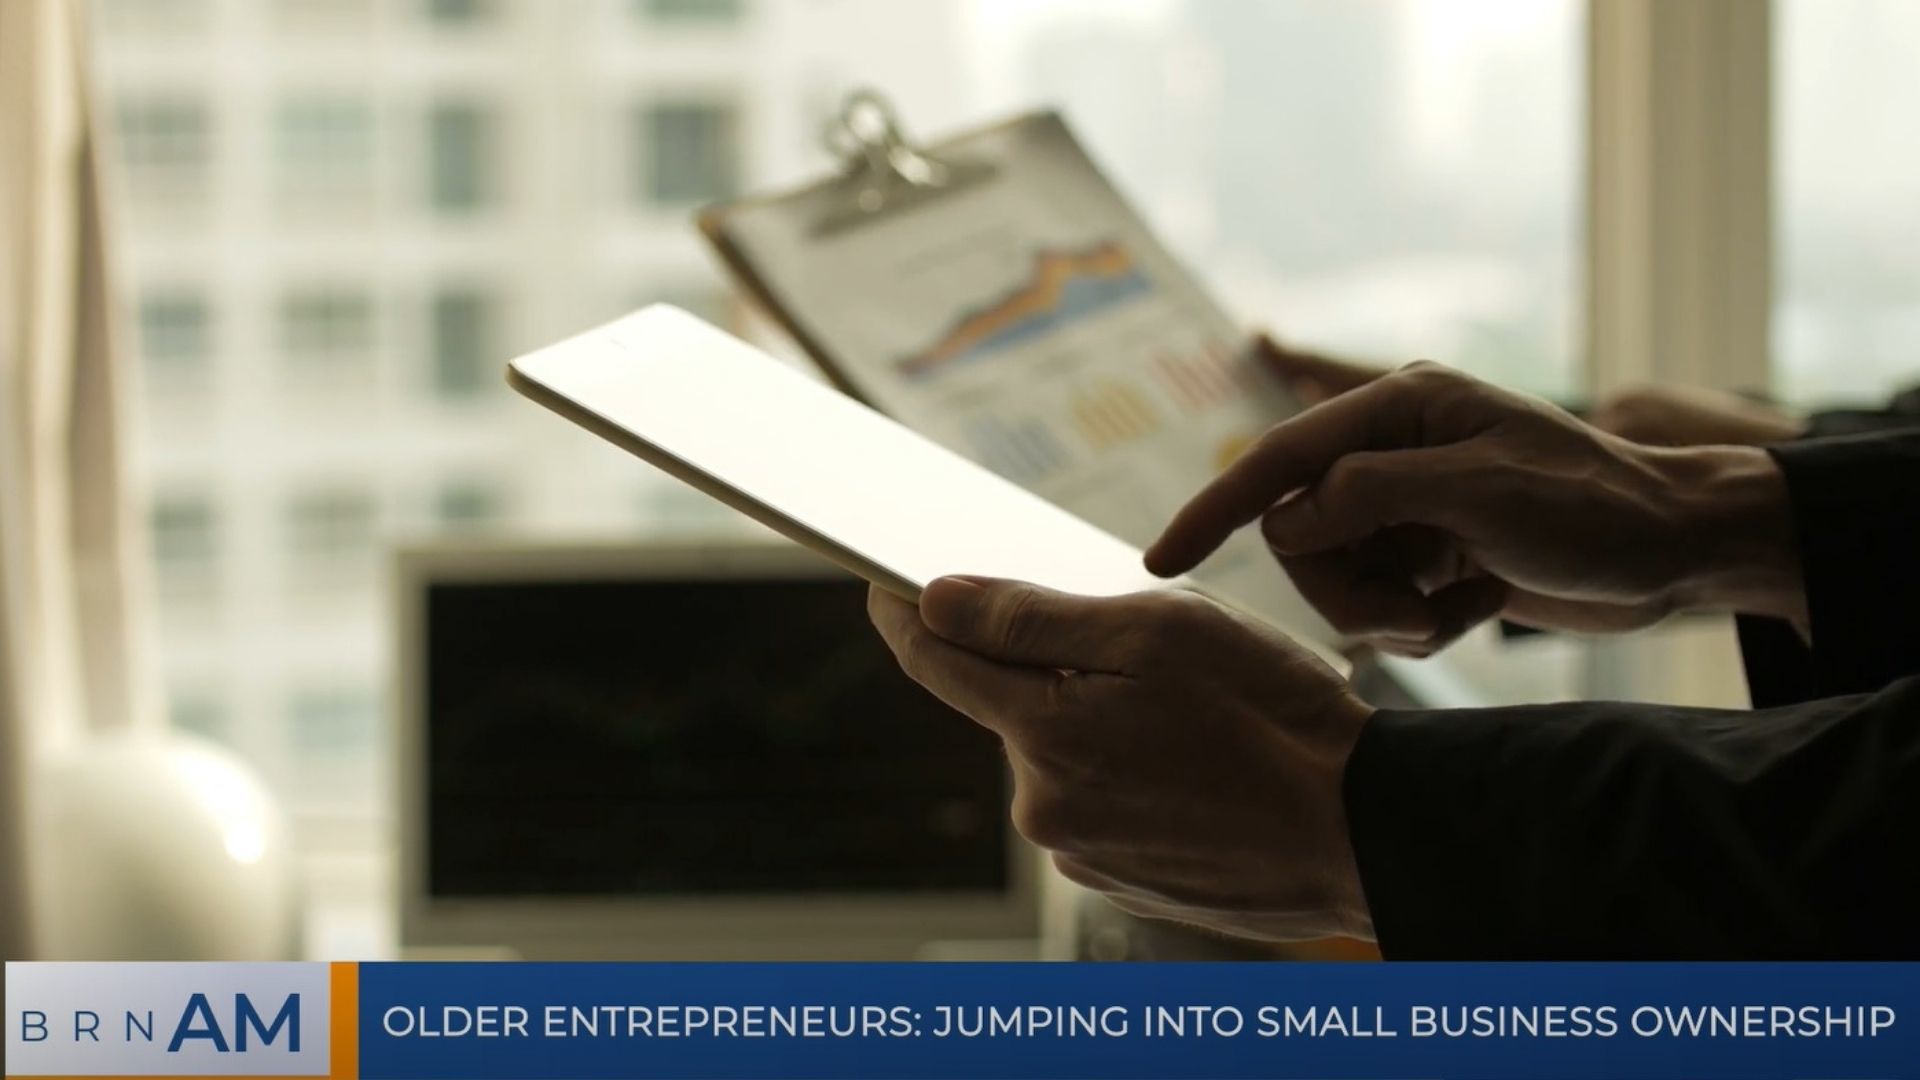 BRN AM | Older entrepreneurs: jumping into small business ownership